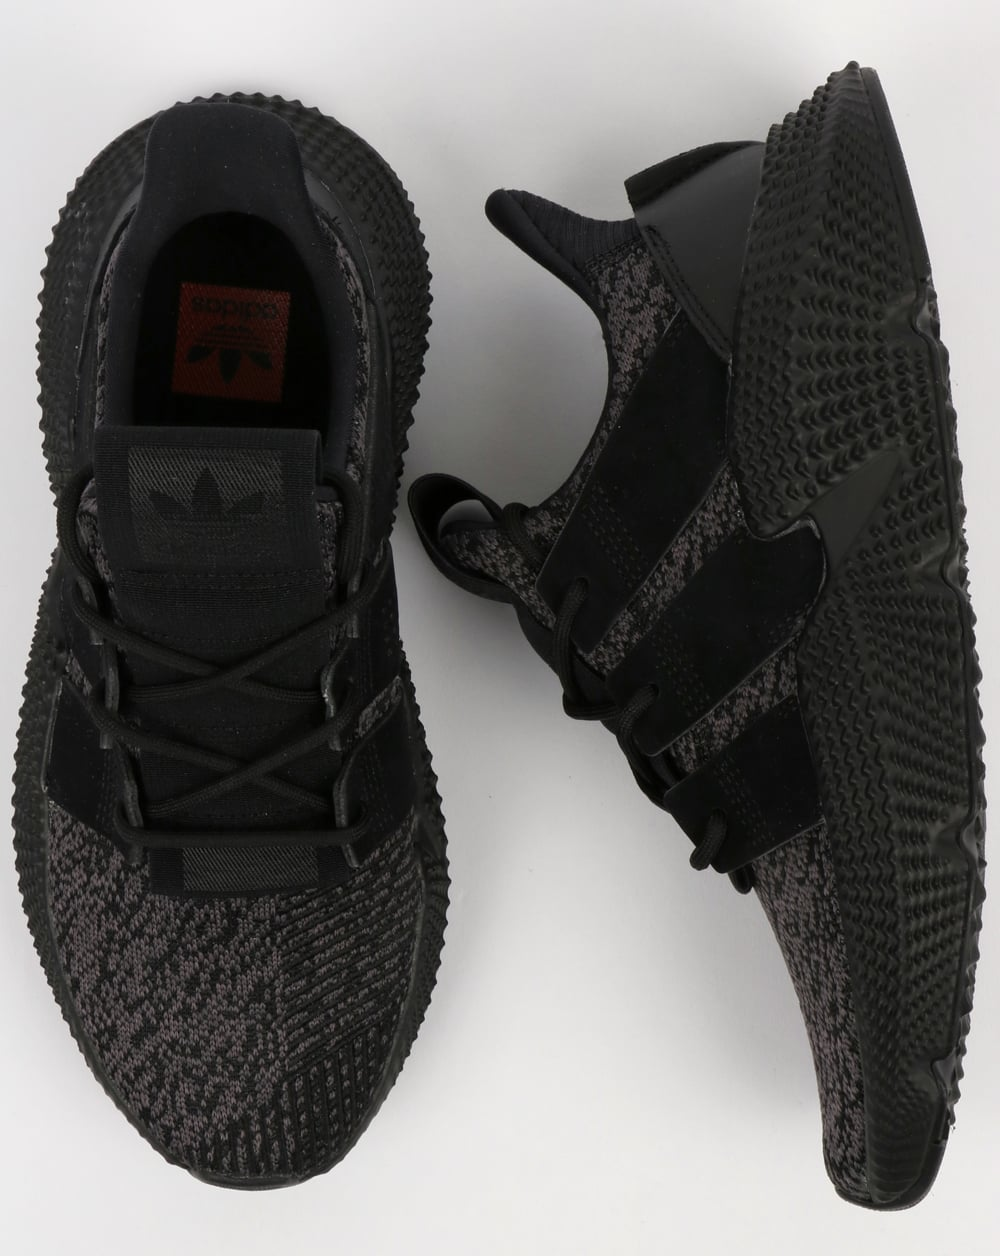 official photos dd97c 1cd07 Adidas Prophere Trainers Core Black Core Black Red